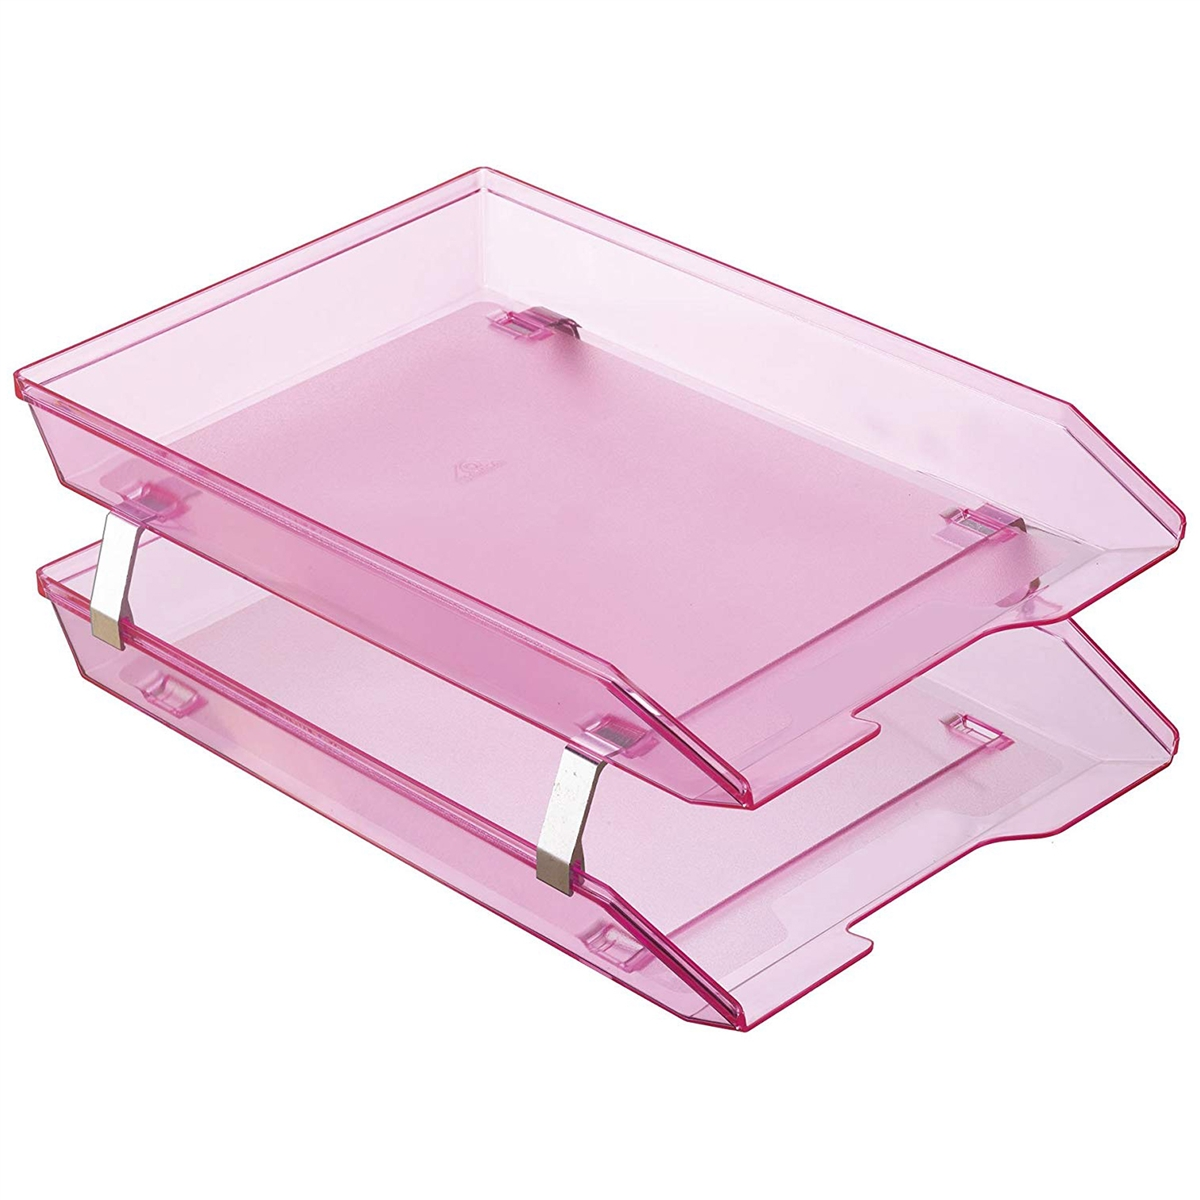 Acrimet Facility Double Letter Tray Front Loading Design (Clear Pink ...